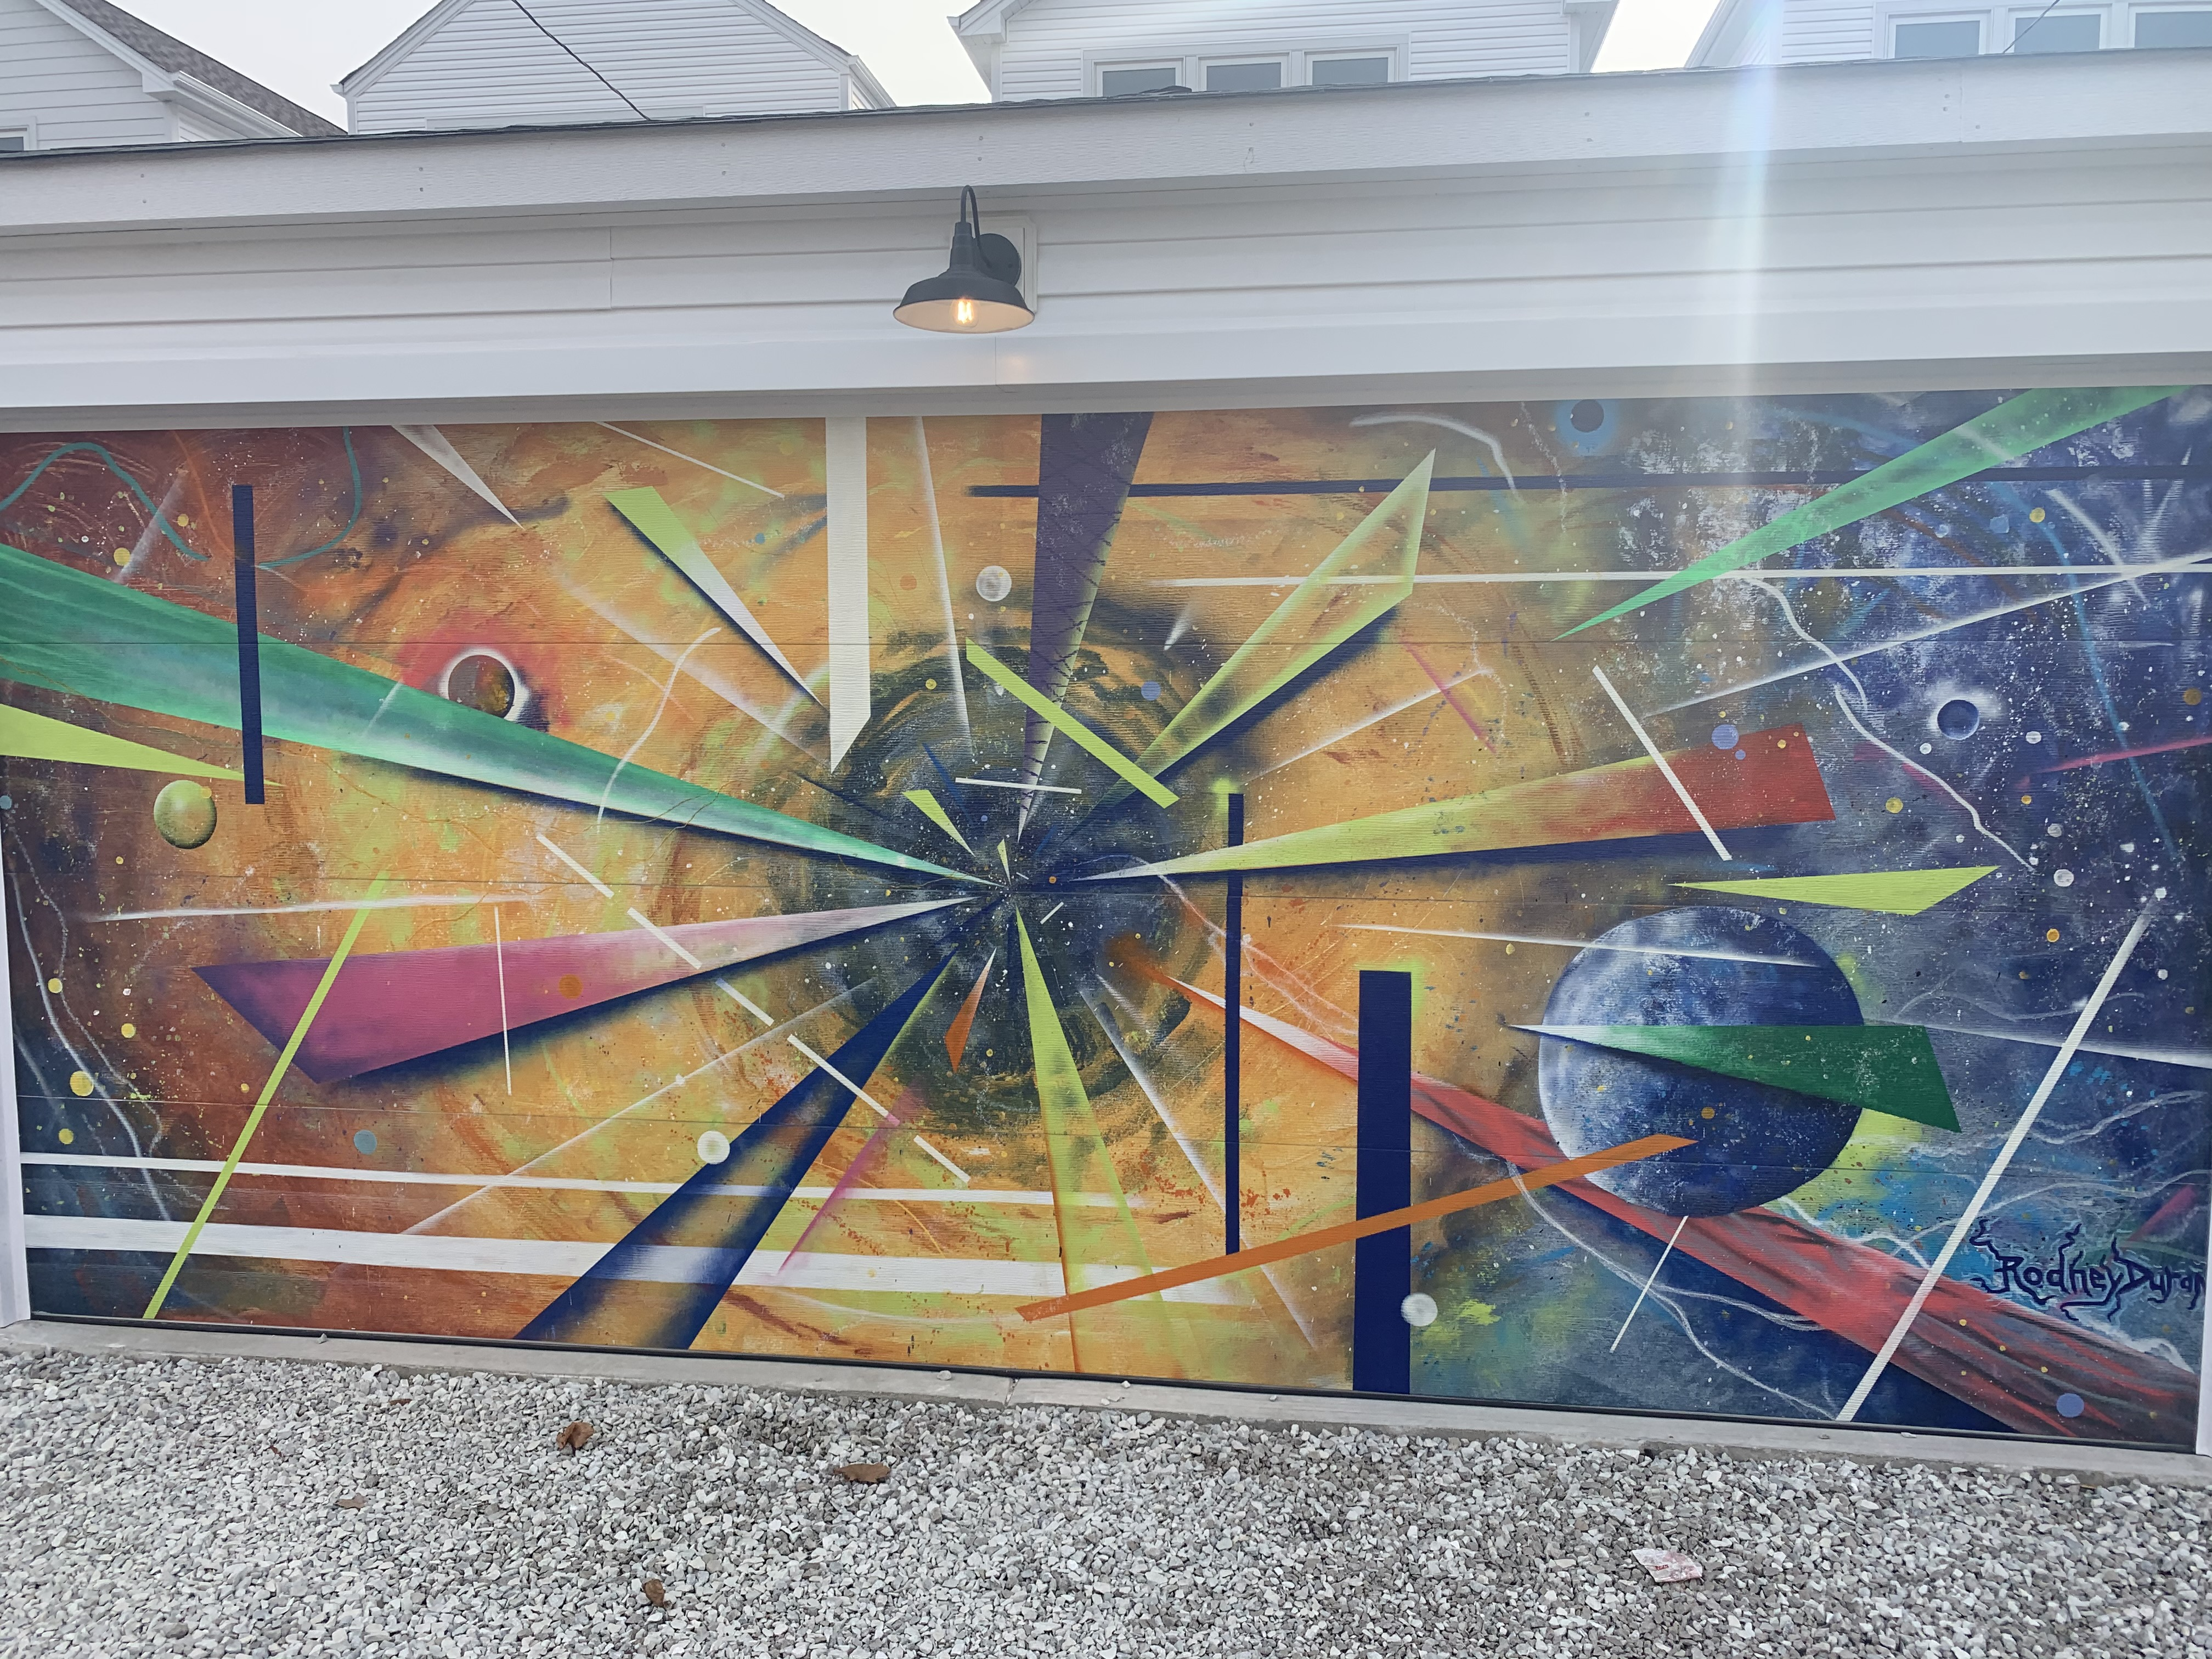 """This mural, by Uptown artist Rodney """"Hotrod"""" Duran, is one of 15 murals painted on garage doors in a single block on the Near West Side. Duran says he's """"really into astronomy and space and time"""" and was trying to get across that, if everyone looked toward Jupiter's moon Callisto, we could all be """"feeling the same beauty."""""""